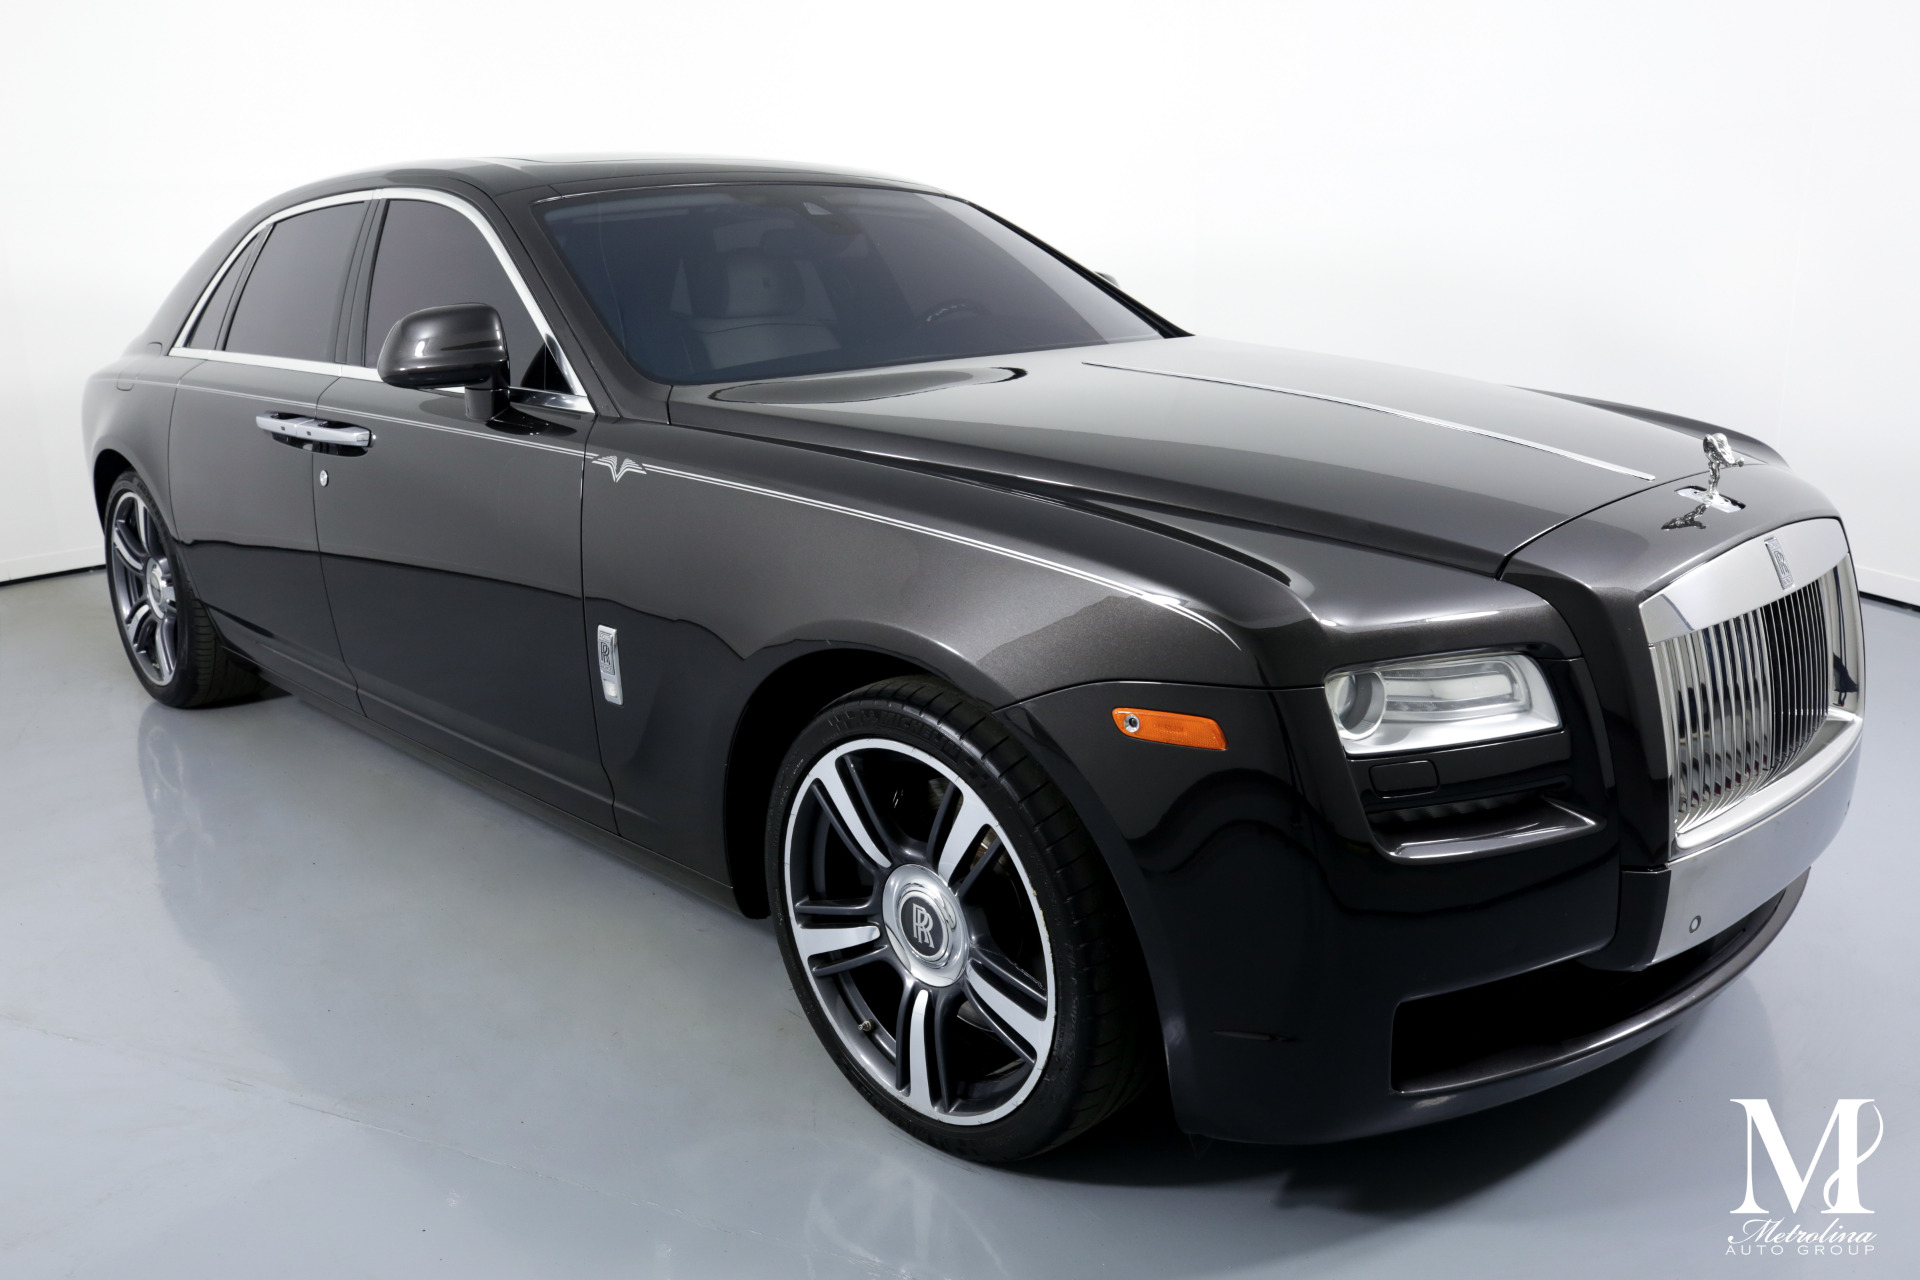 Used 2014 Rolls-Royce Ghost for sale $124,996 at Metrolina Auto Group in Charlotte NC 28217 - 2